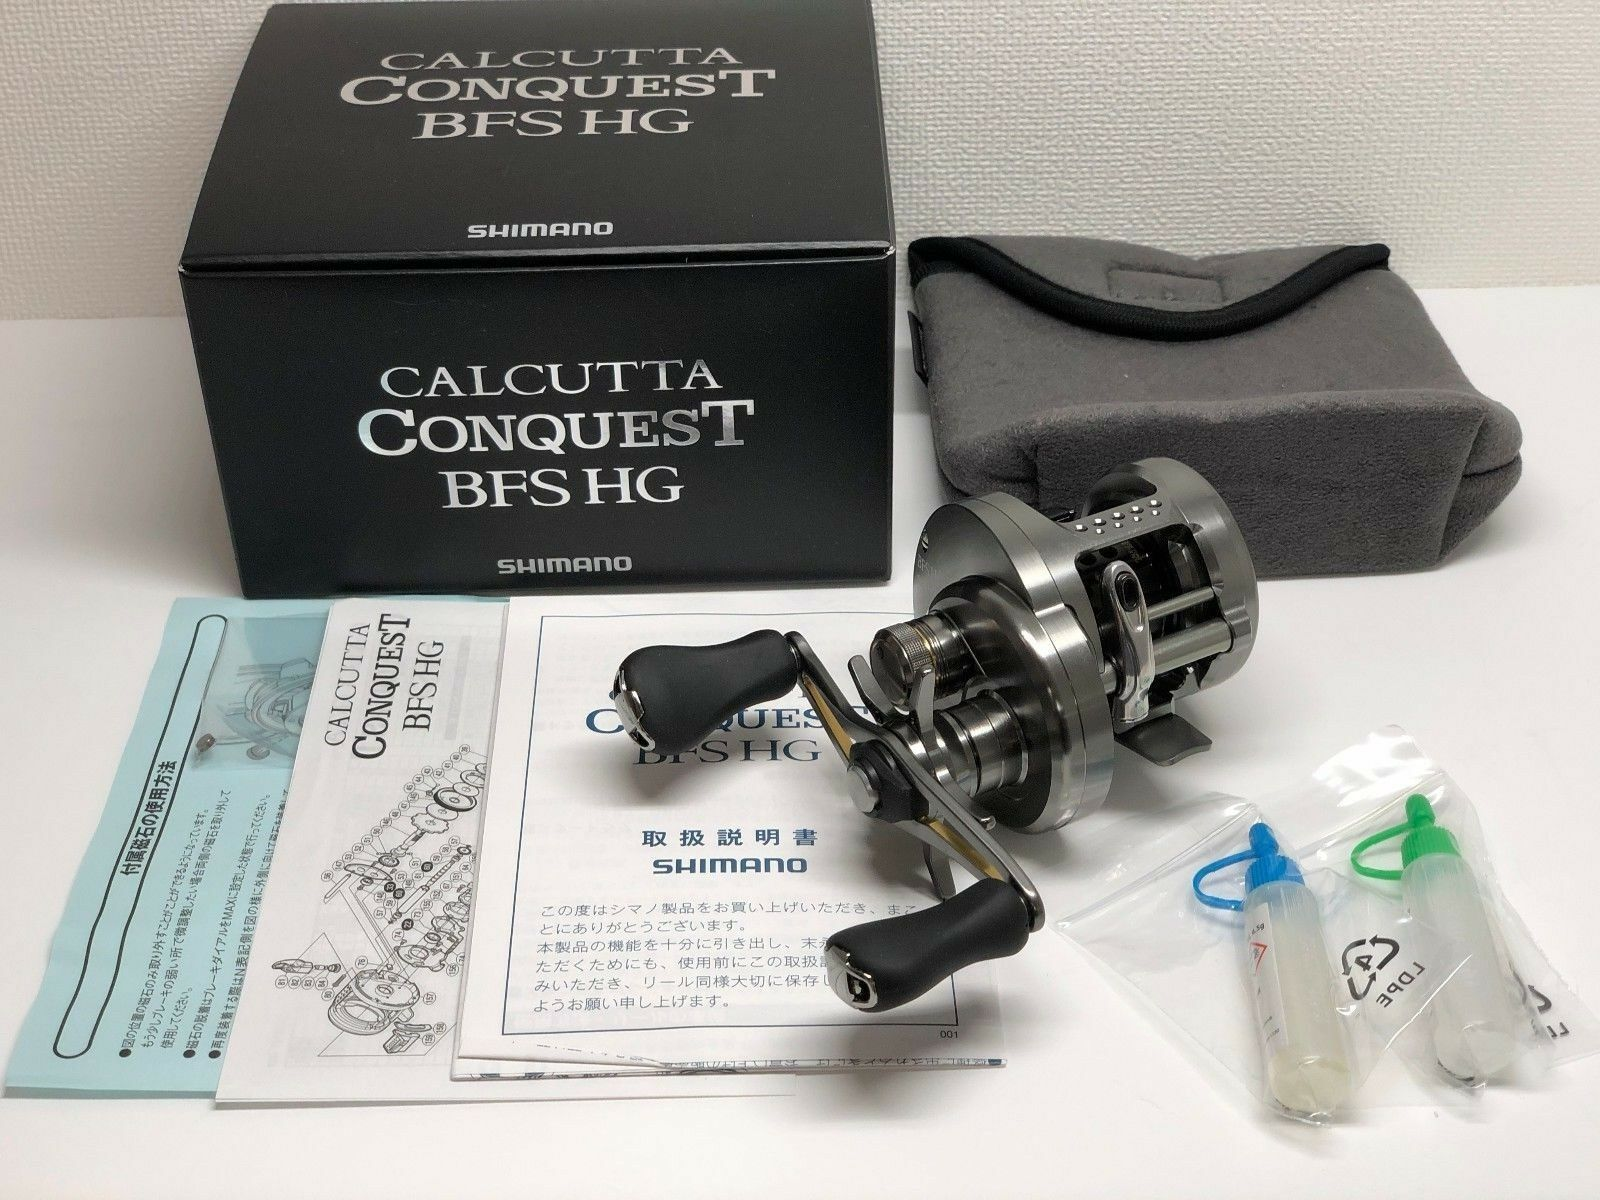 SHIMANO 17 CALCUTTA CONQUEST BFS HG RIGHT   - Free Shipping from Japan